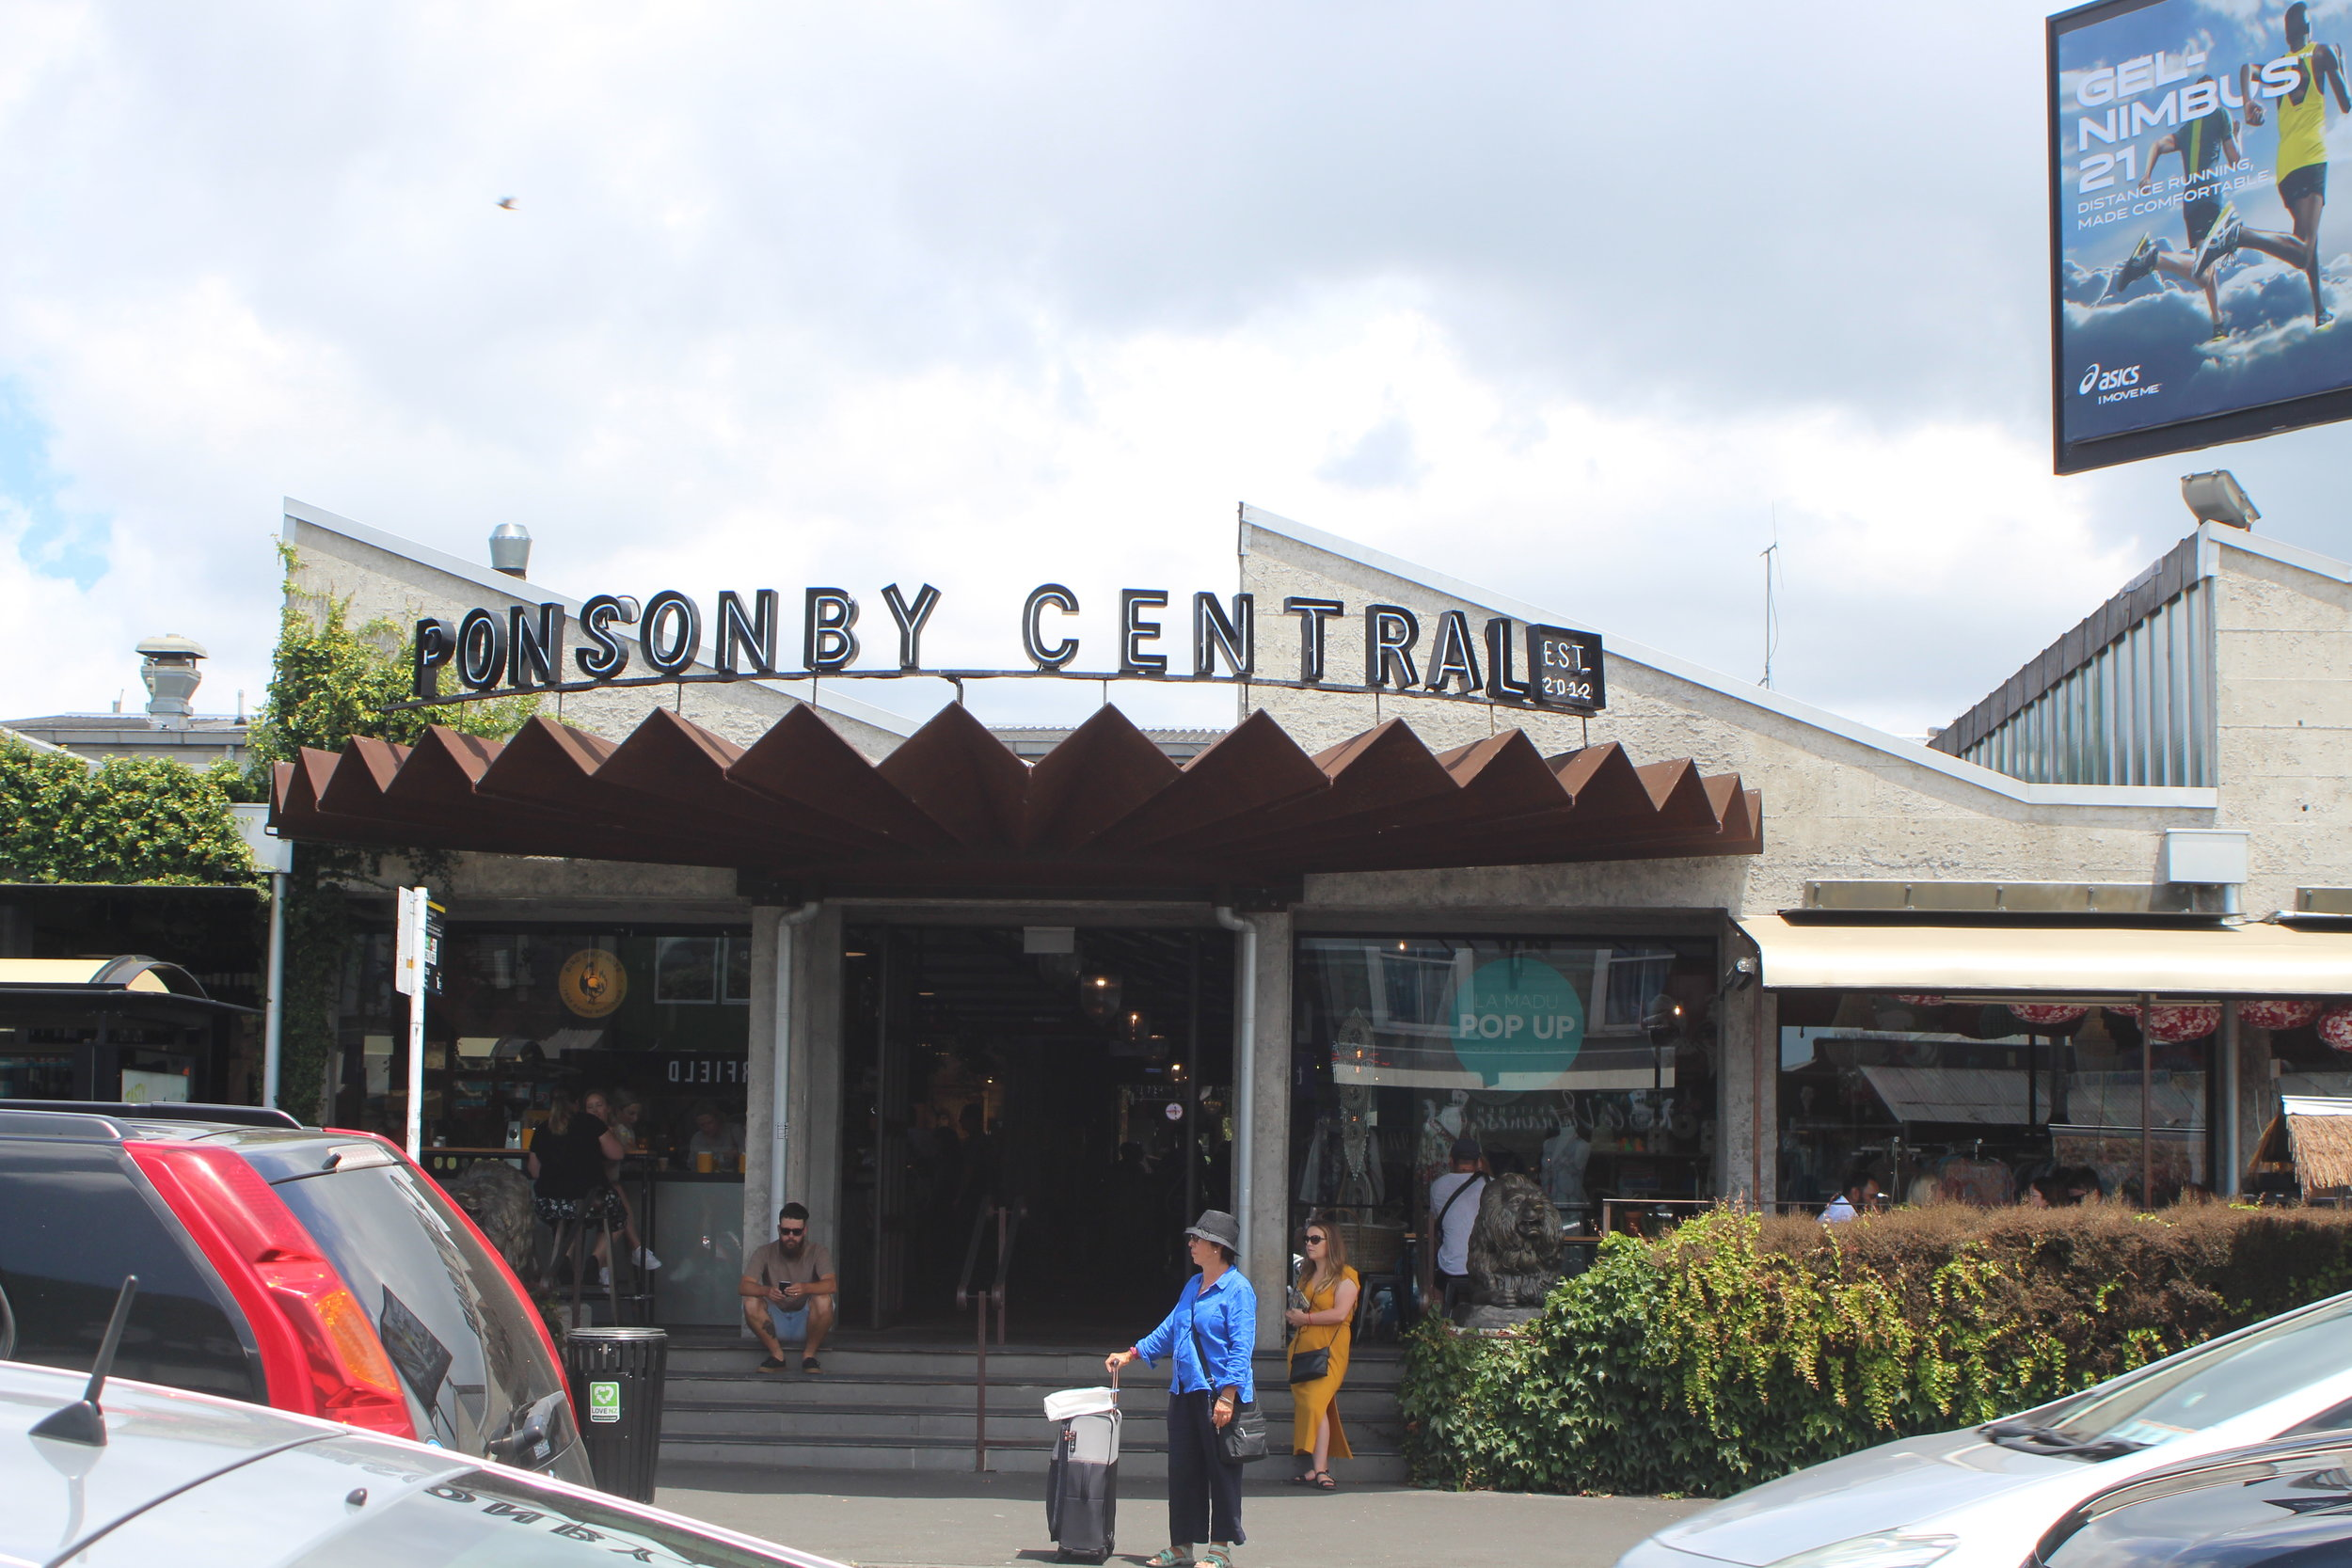 Auckland Ponsonby Central.JPG